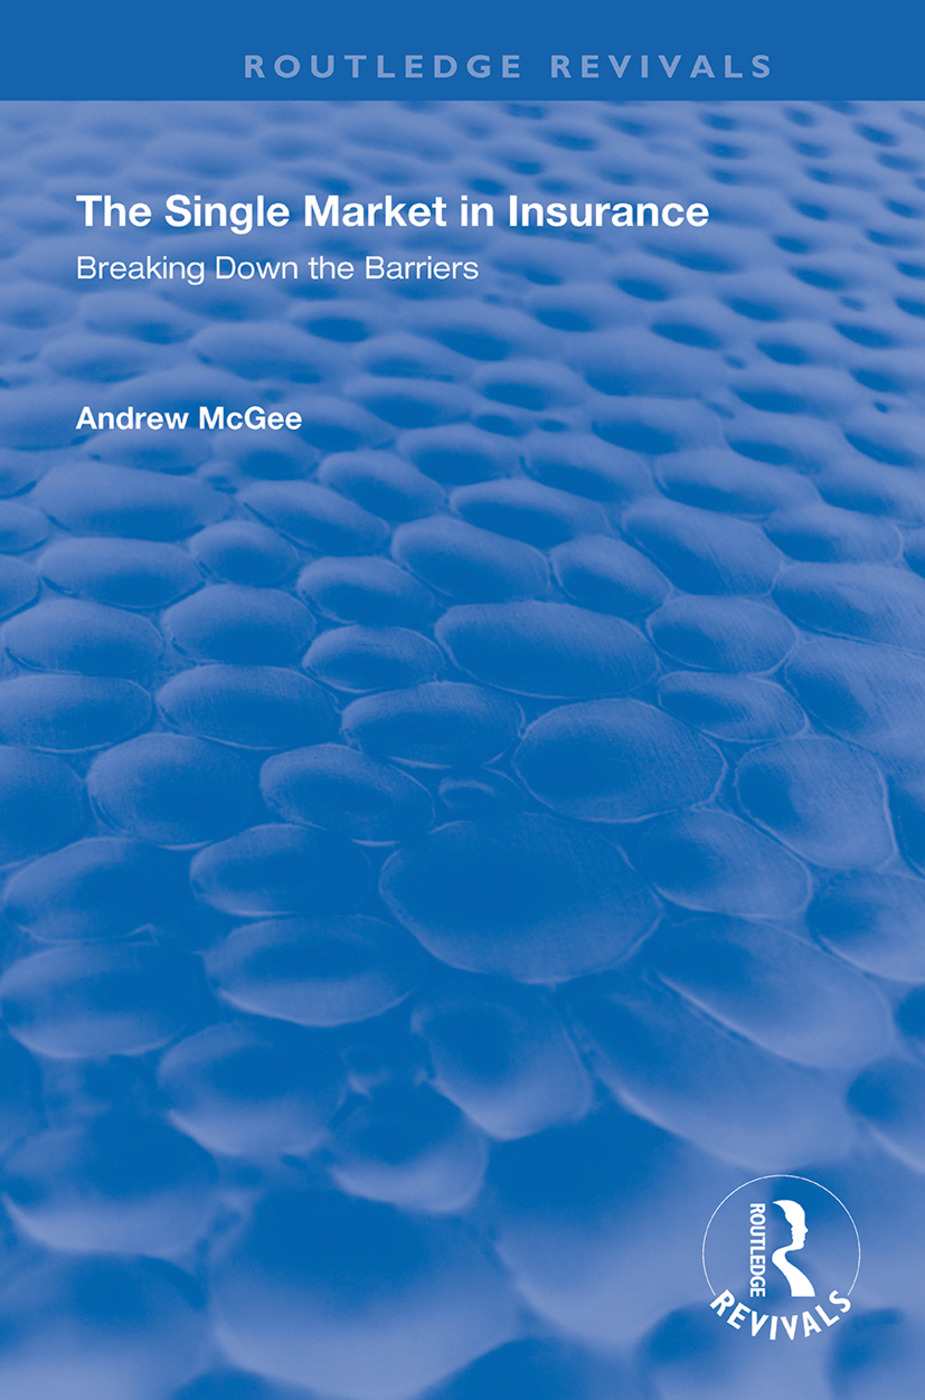 The Single Market in Insurance: Breaking Down the Barriers book cover